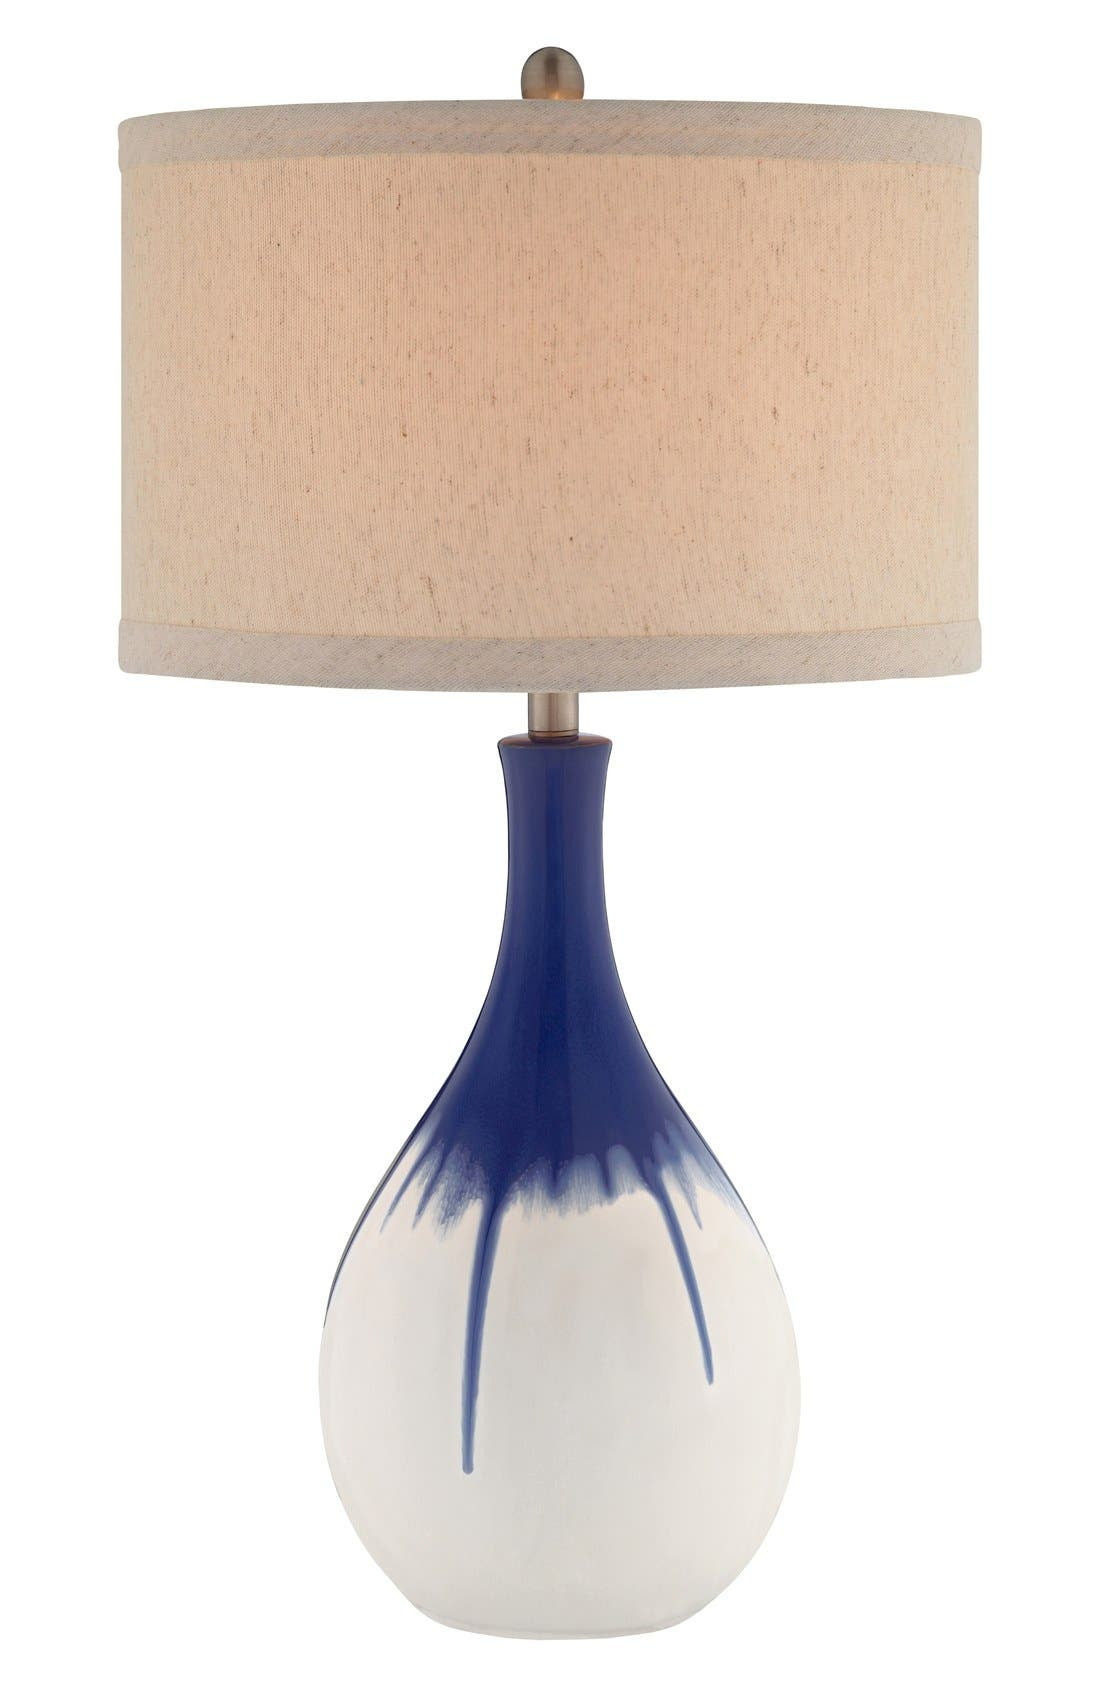 Cobalt Ceramic Table Lamp,                             Main thumbnail 1, color,                             400